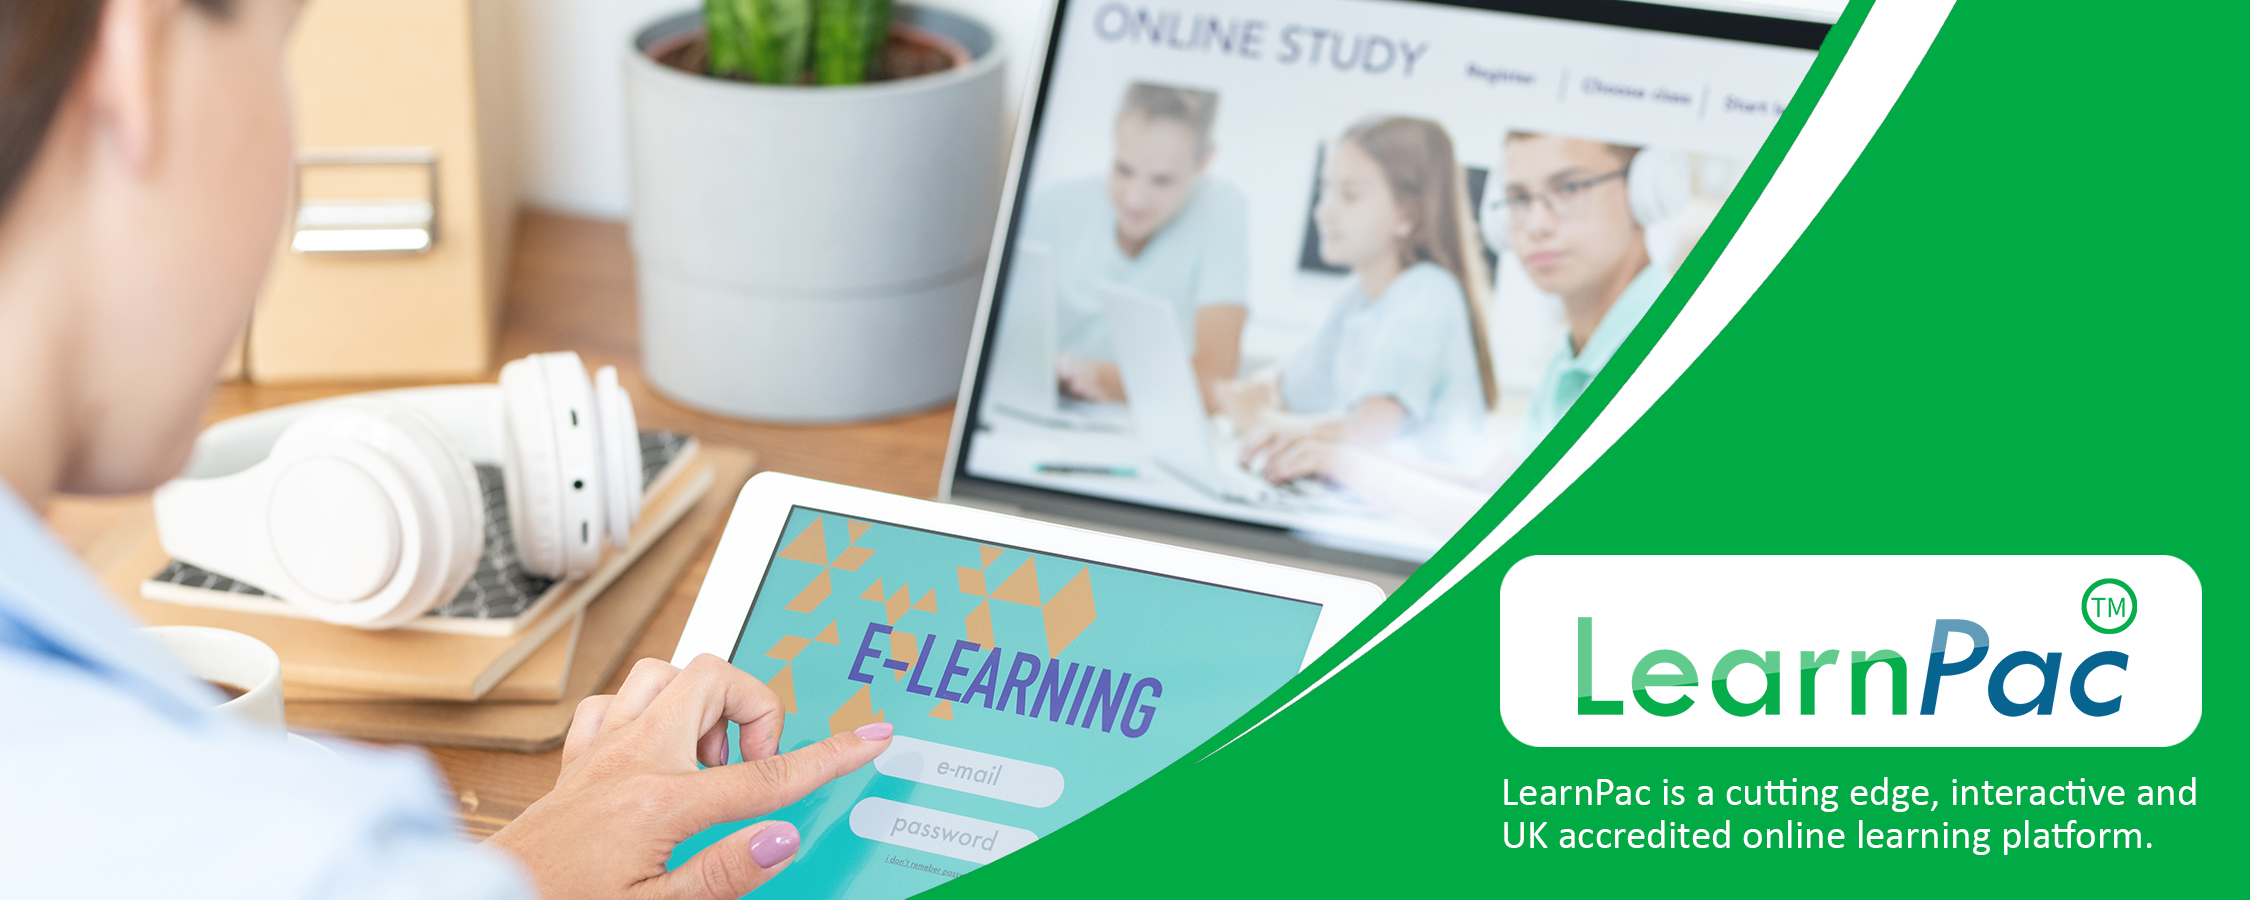 Excel 2016 Essentials Training - Online Learning Courses - E-Learning Courses - LearnPac Systems UK -